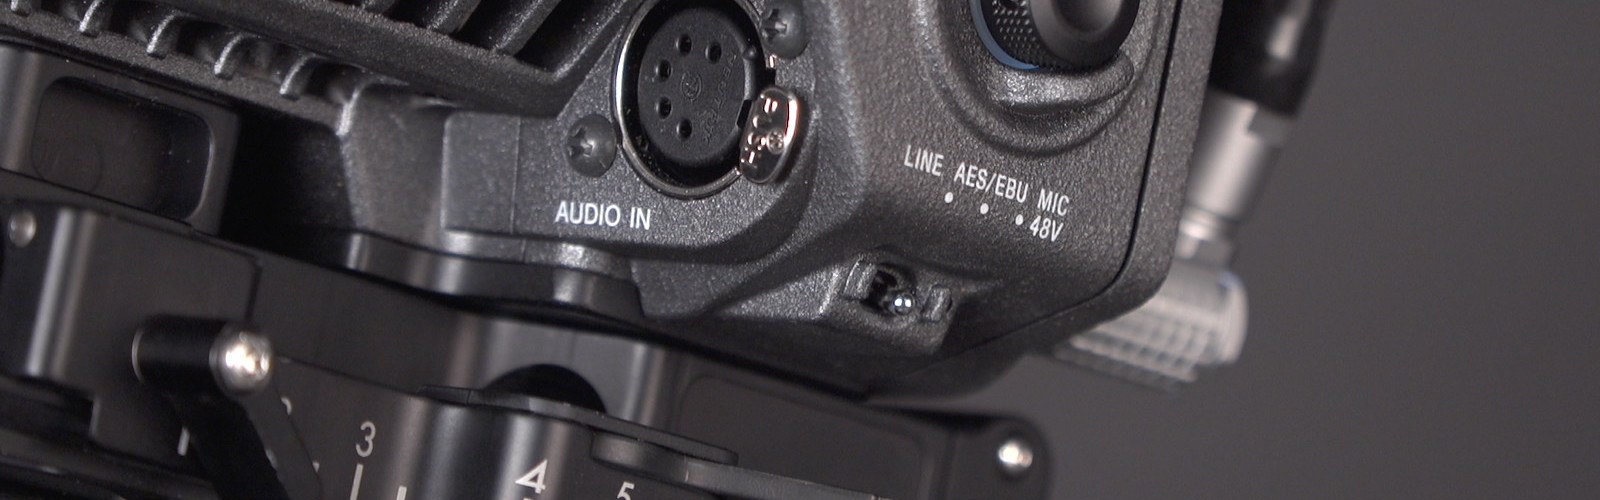 Header image for article At the Bench: Audio and the Sony VENICE Camera